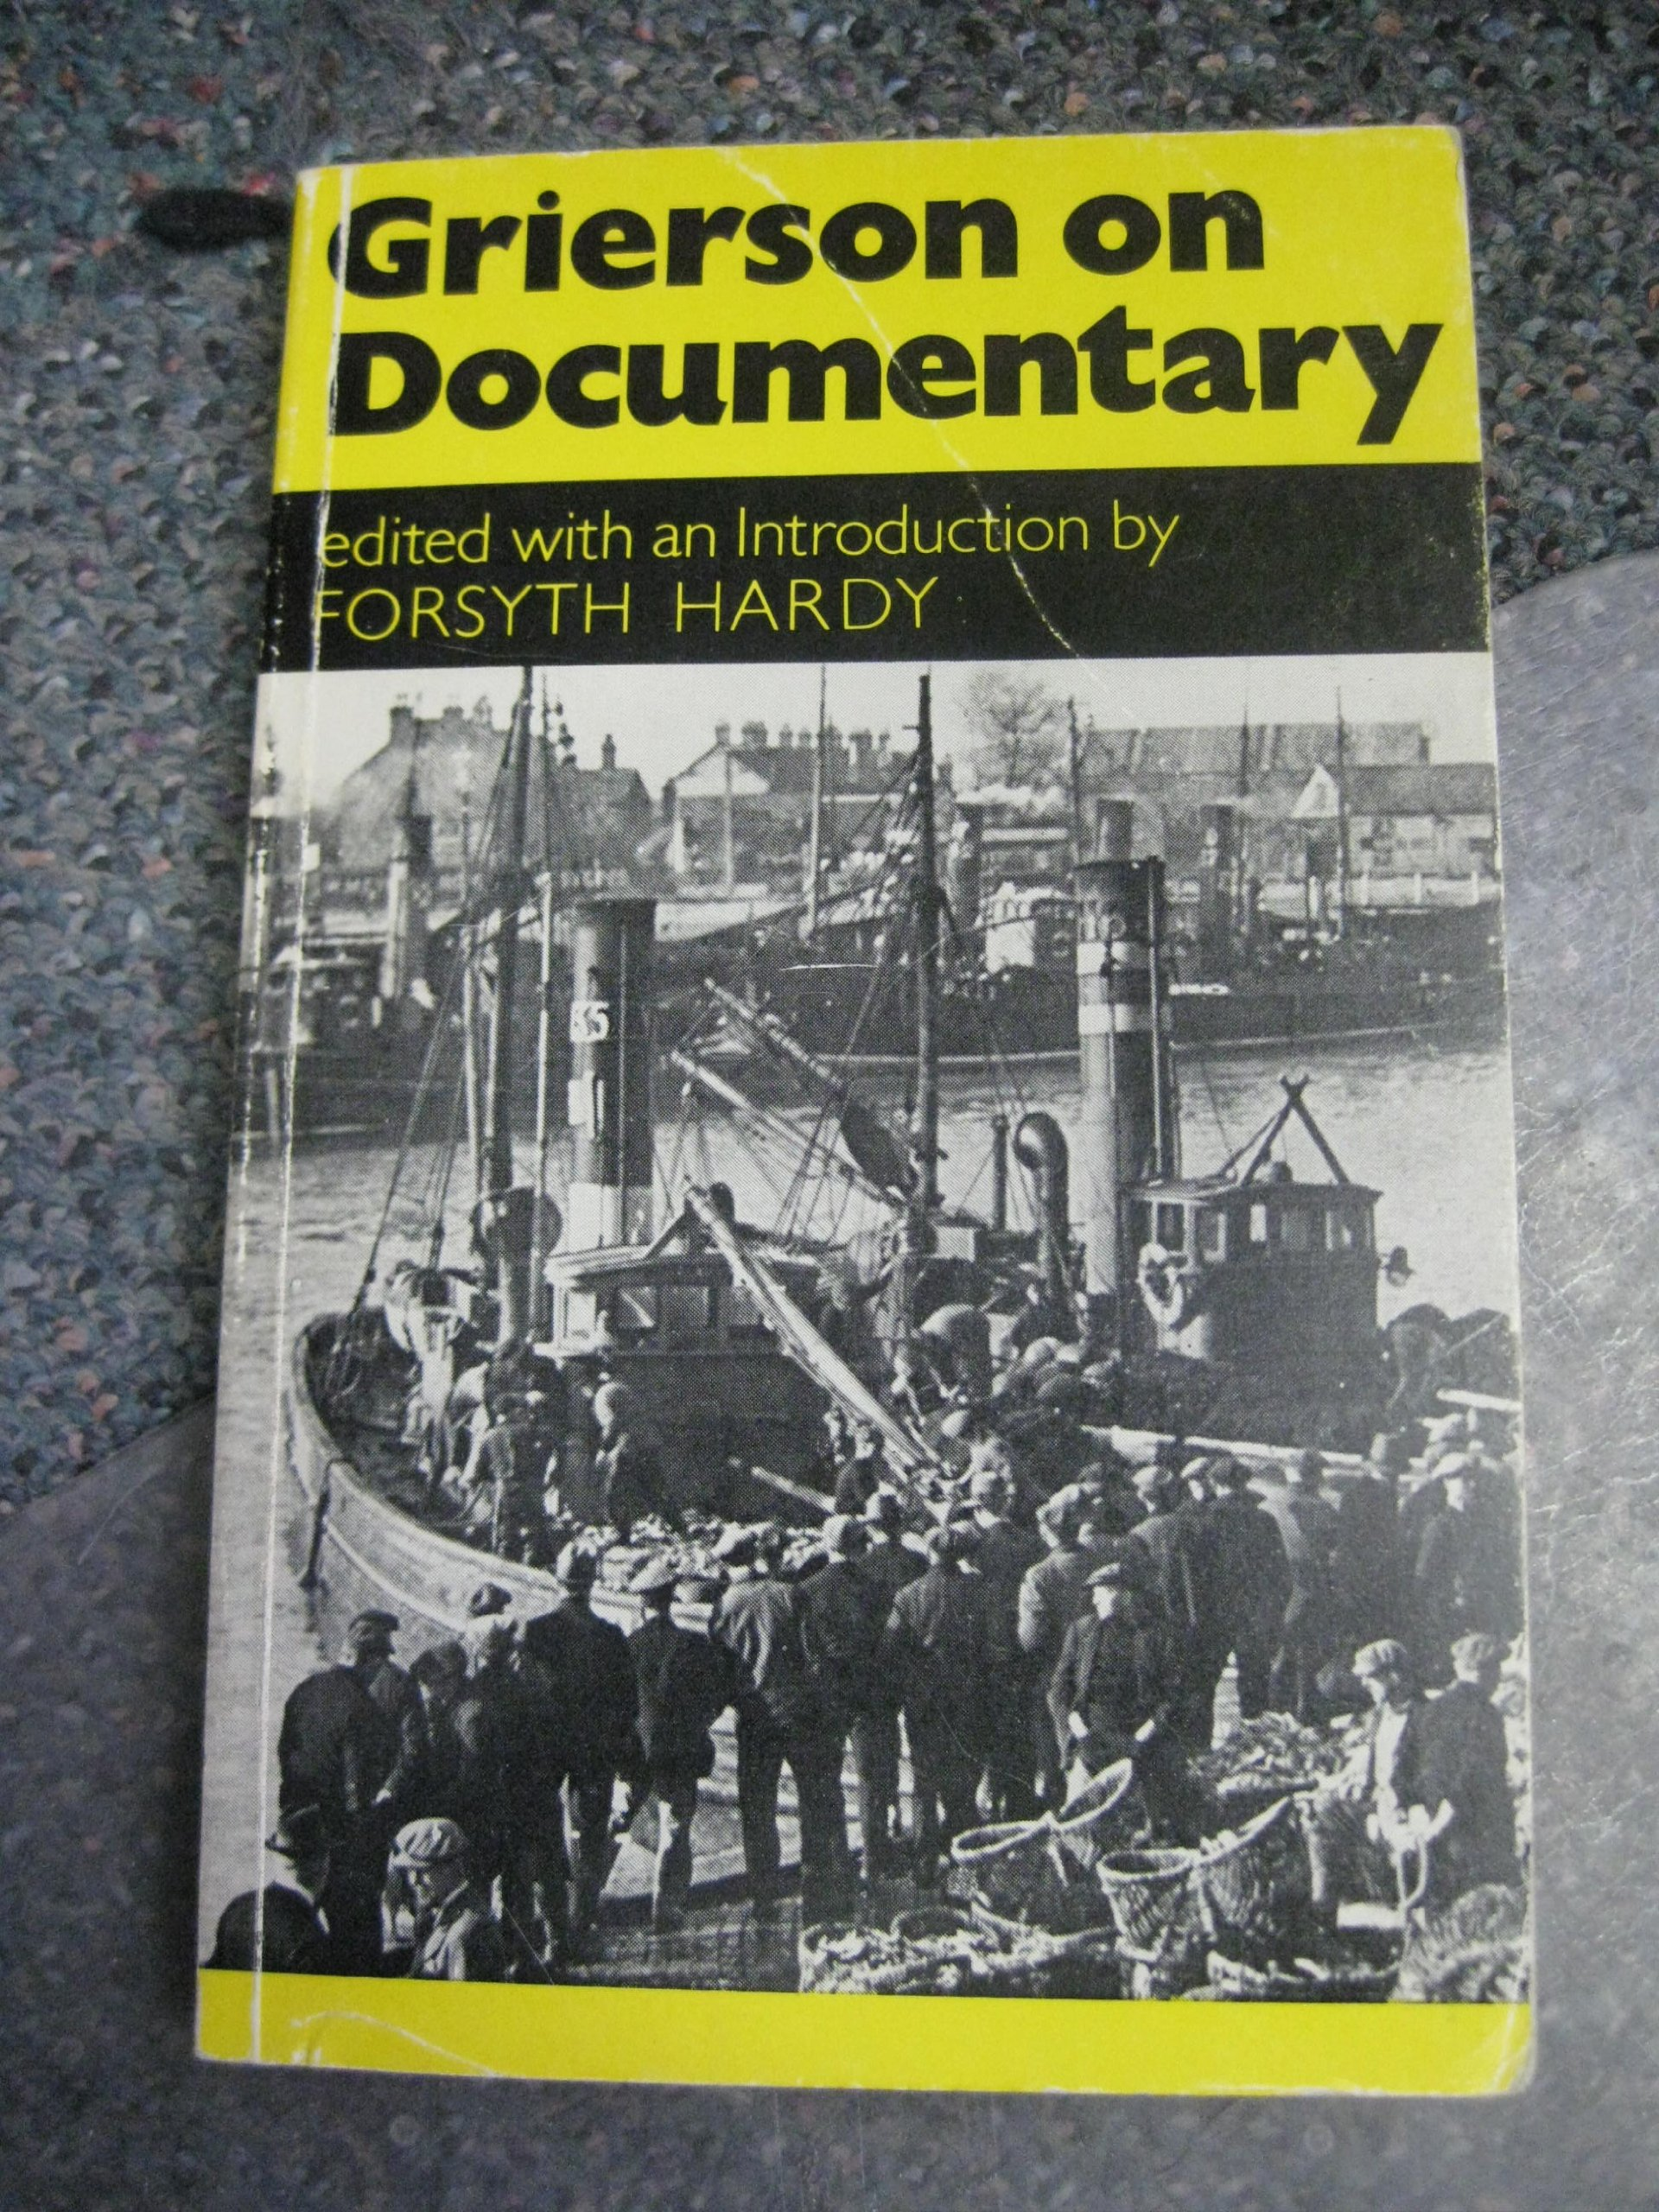 On Documentary